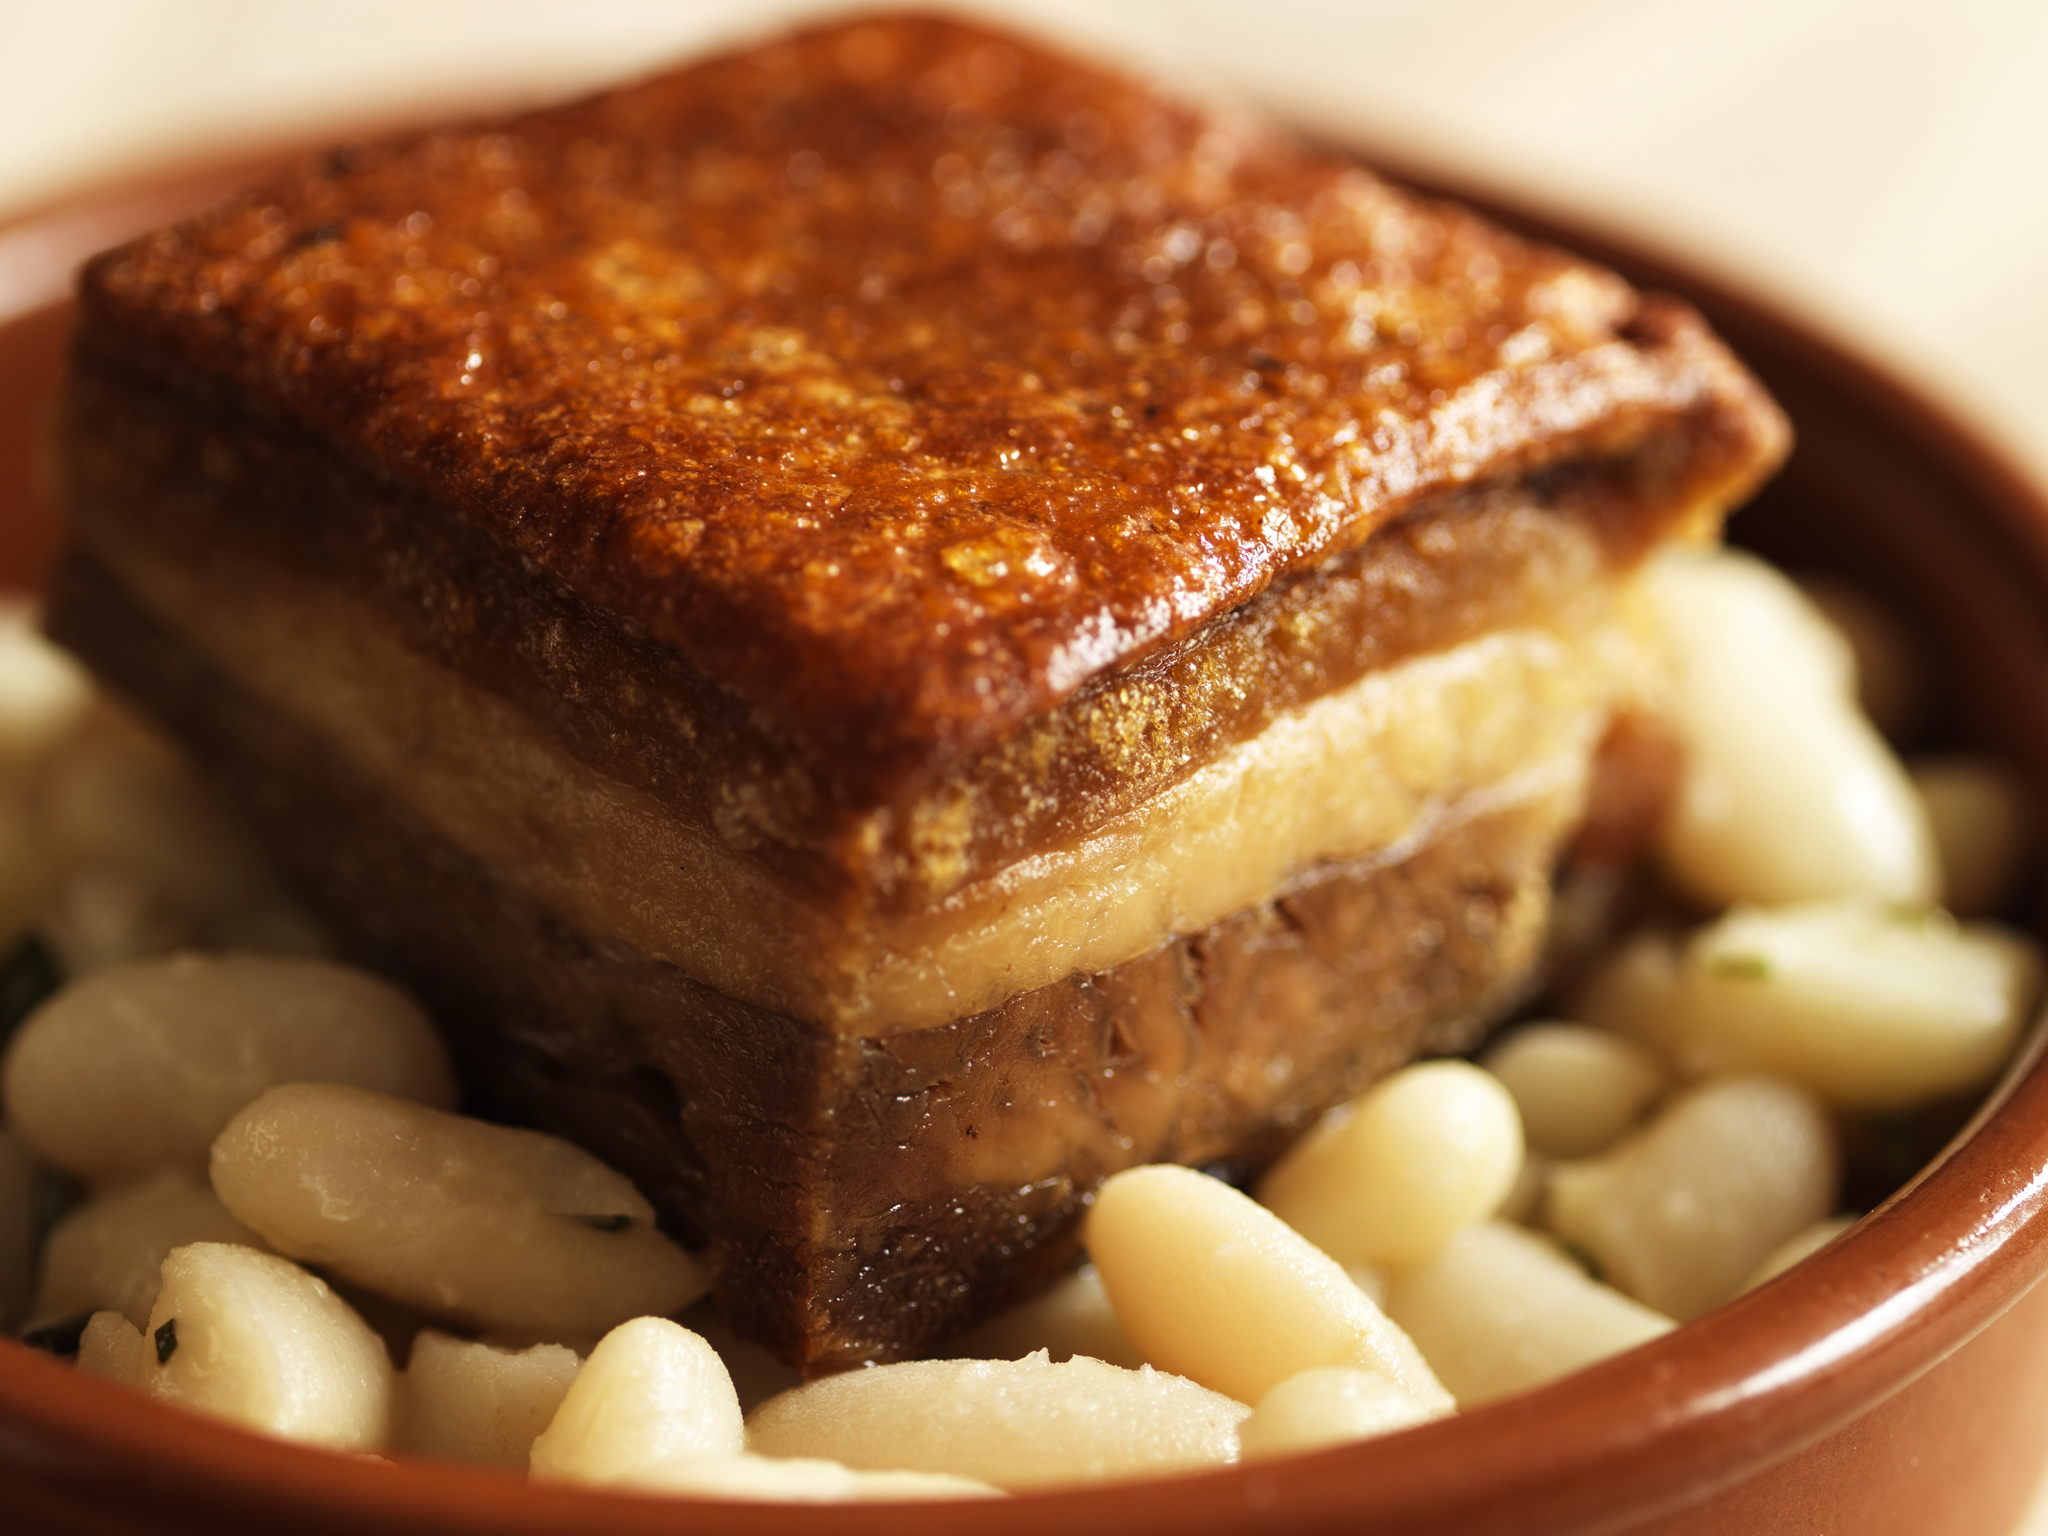 Confit of pork belly with rosemary-scented cannellini beans at Opera Tavern